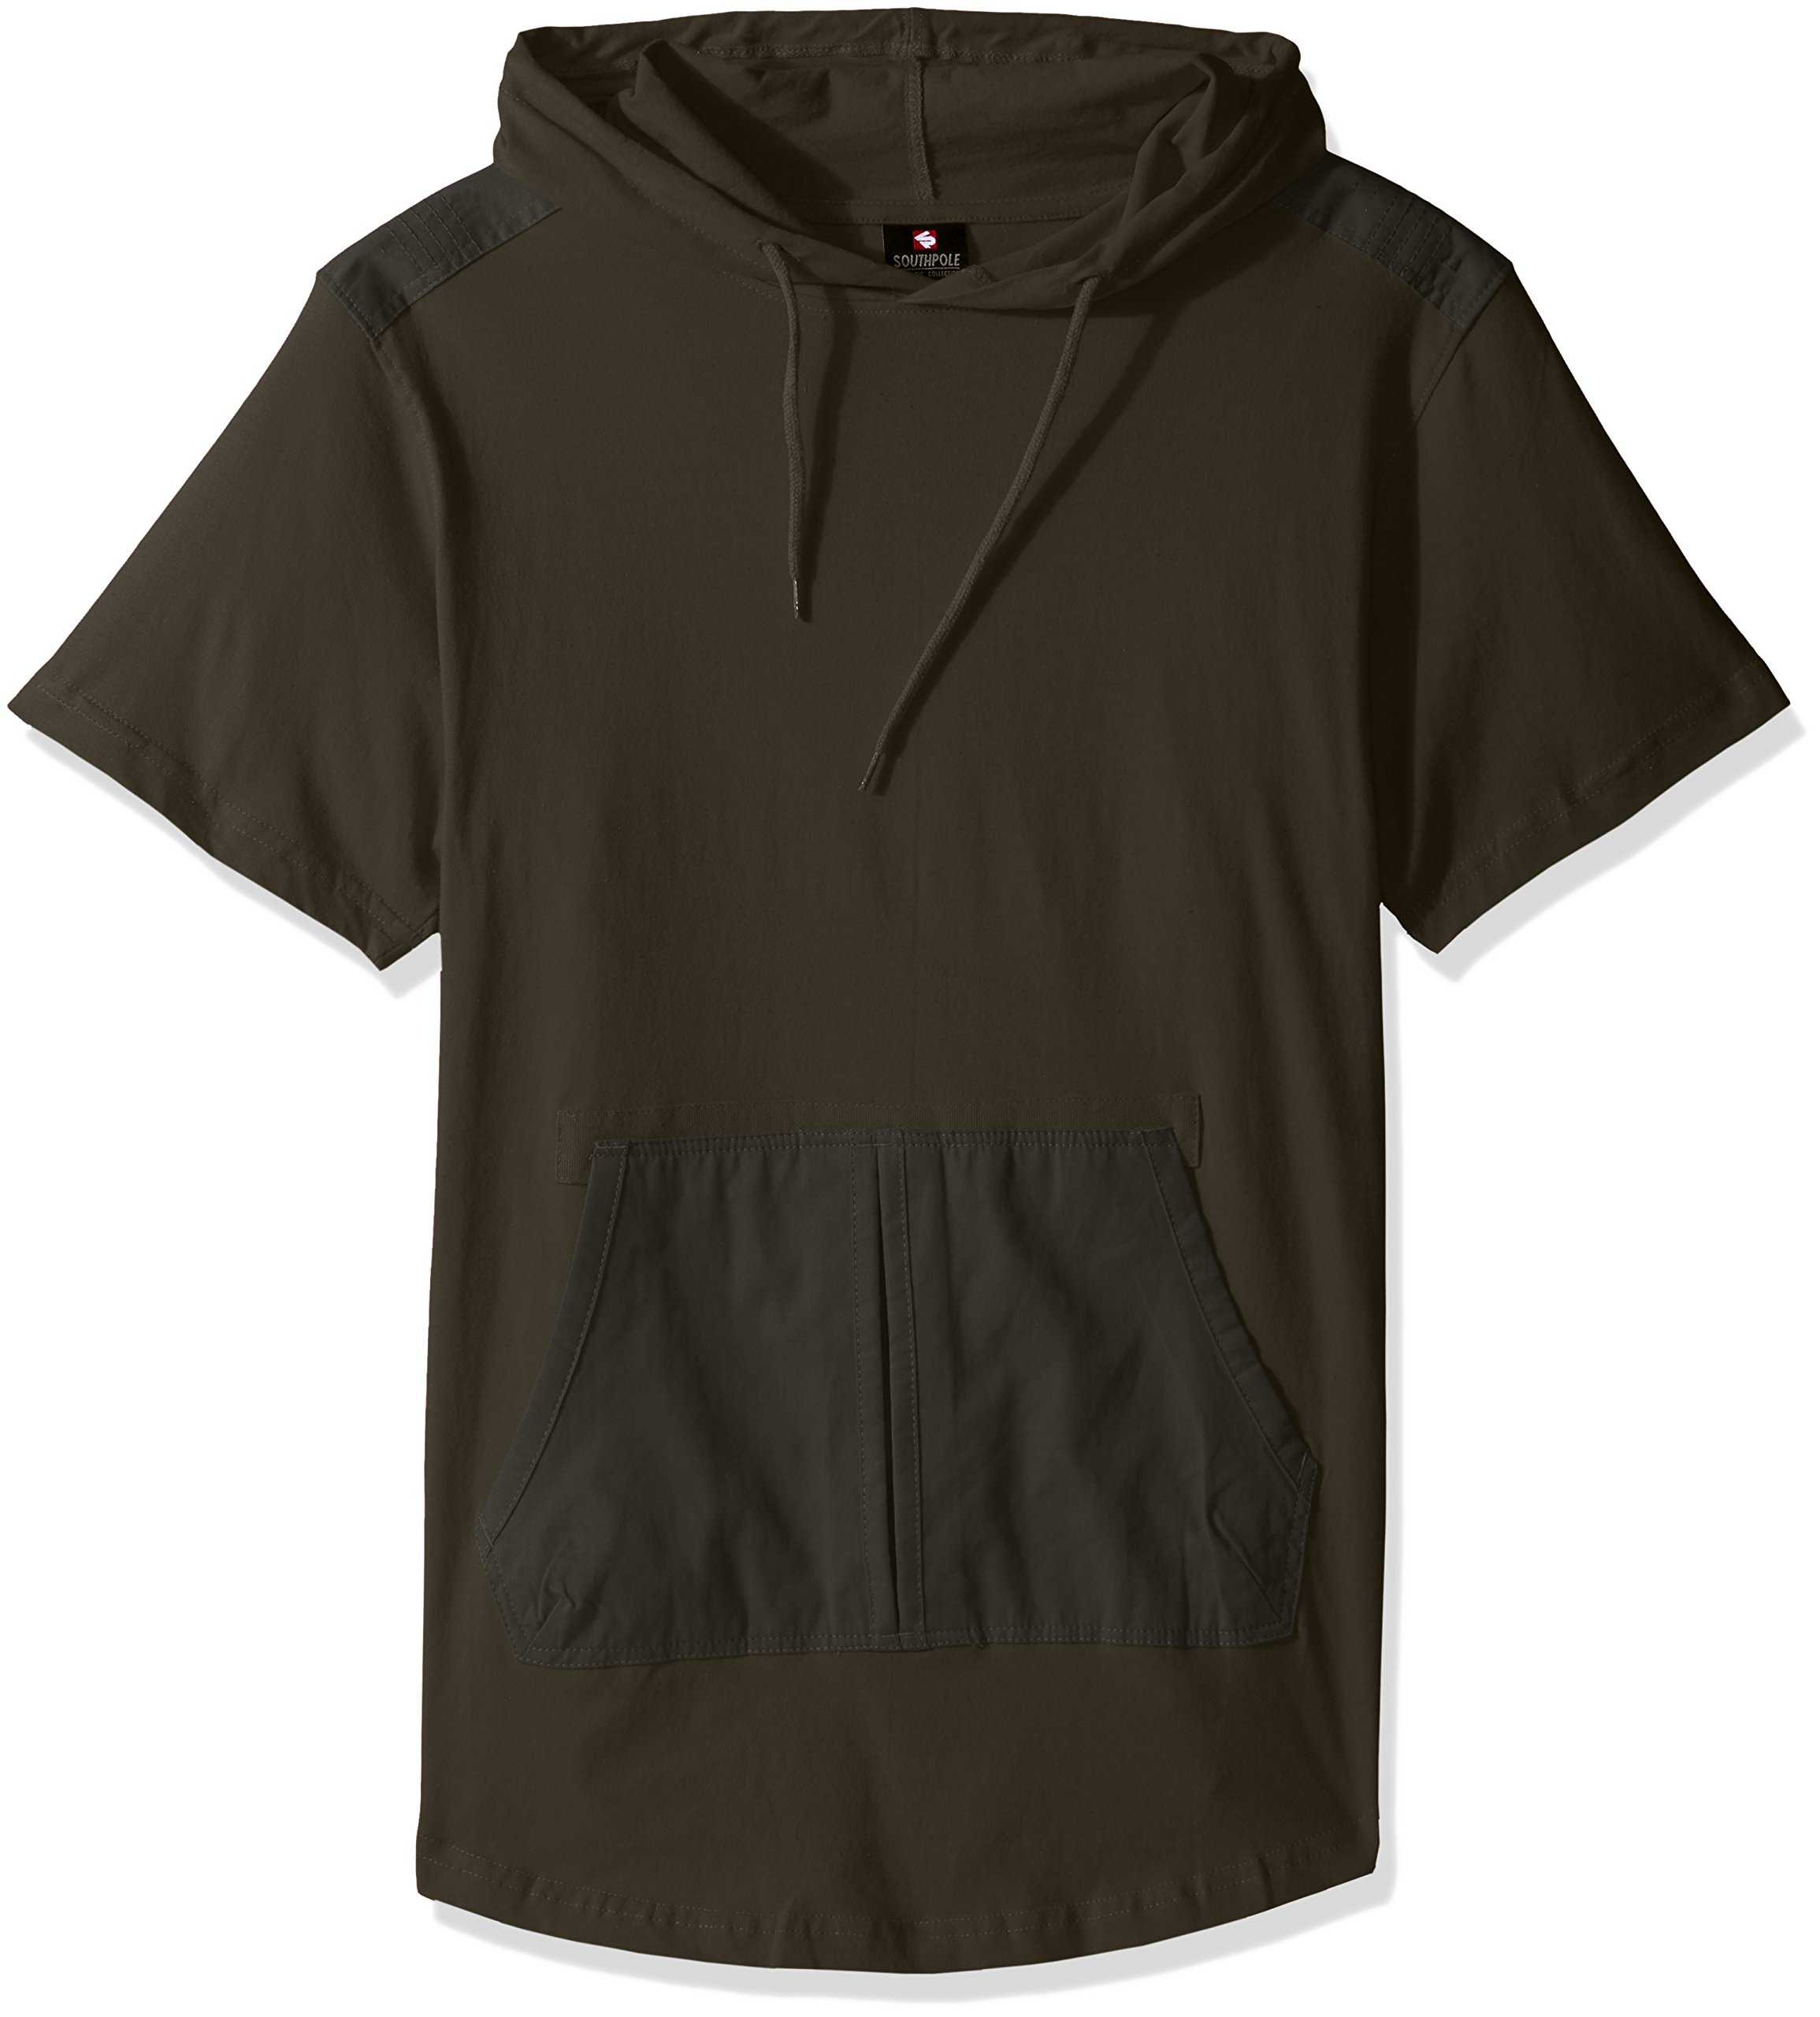 Southpole Men's Short Sleeve Hooded Scallop Tee with Fine Twill Detail, Olive, Large